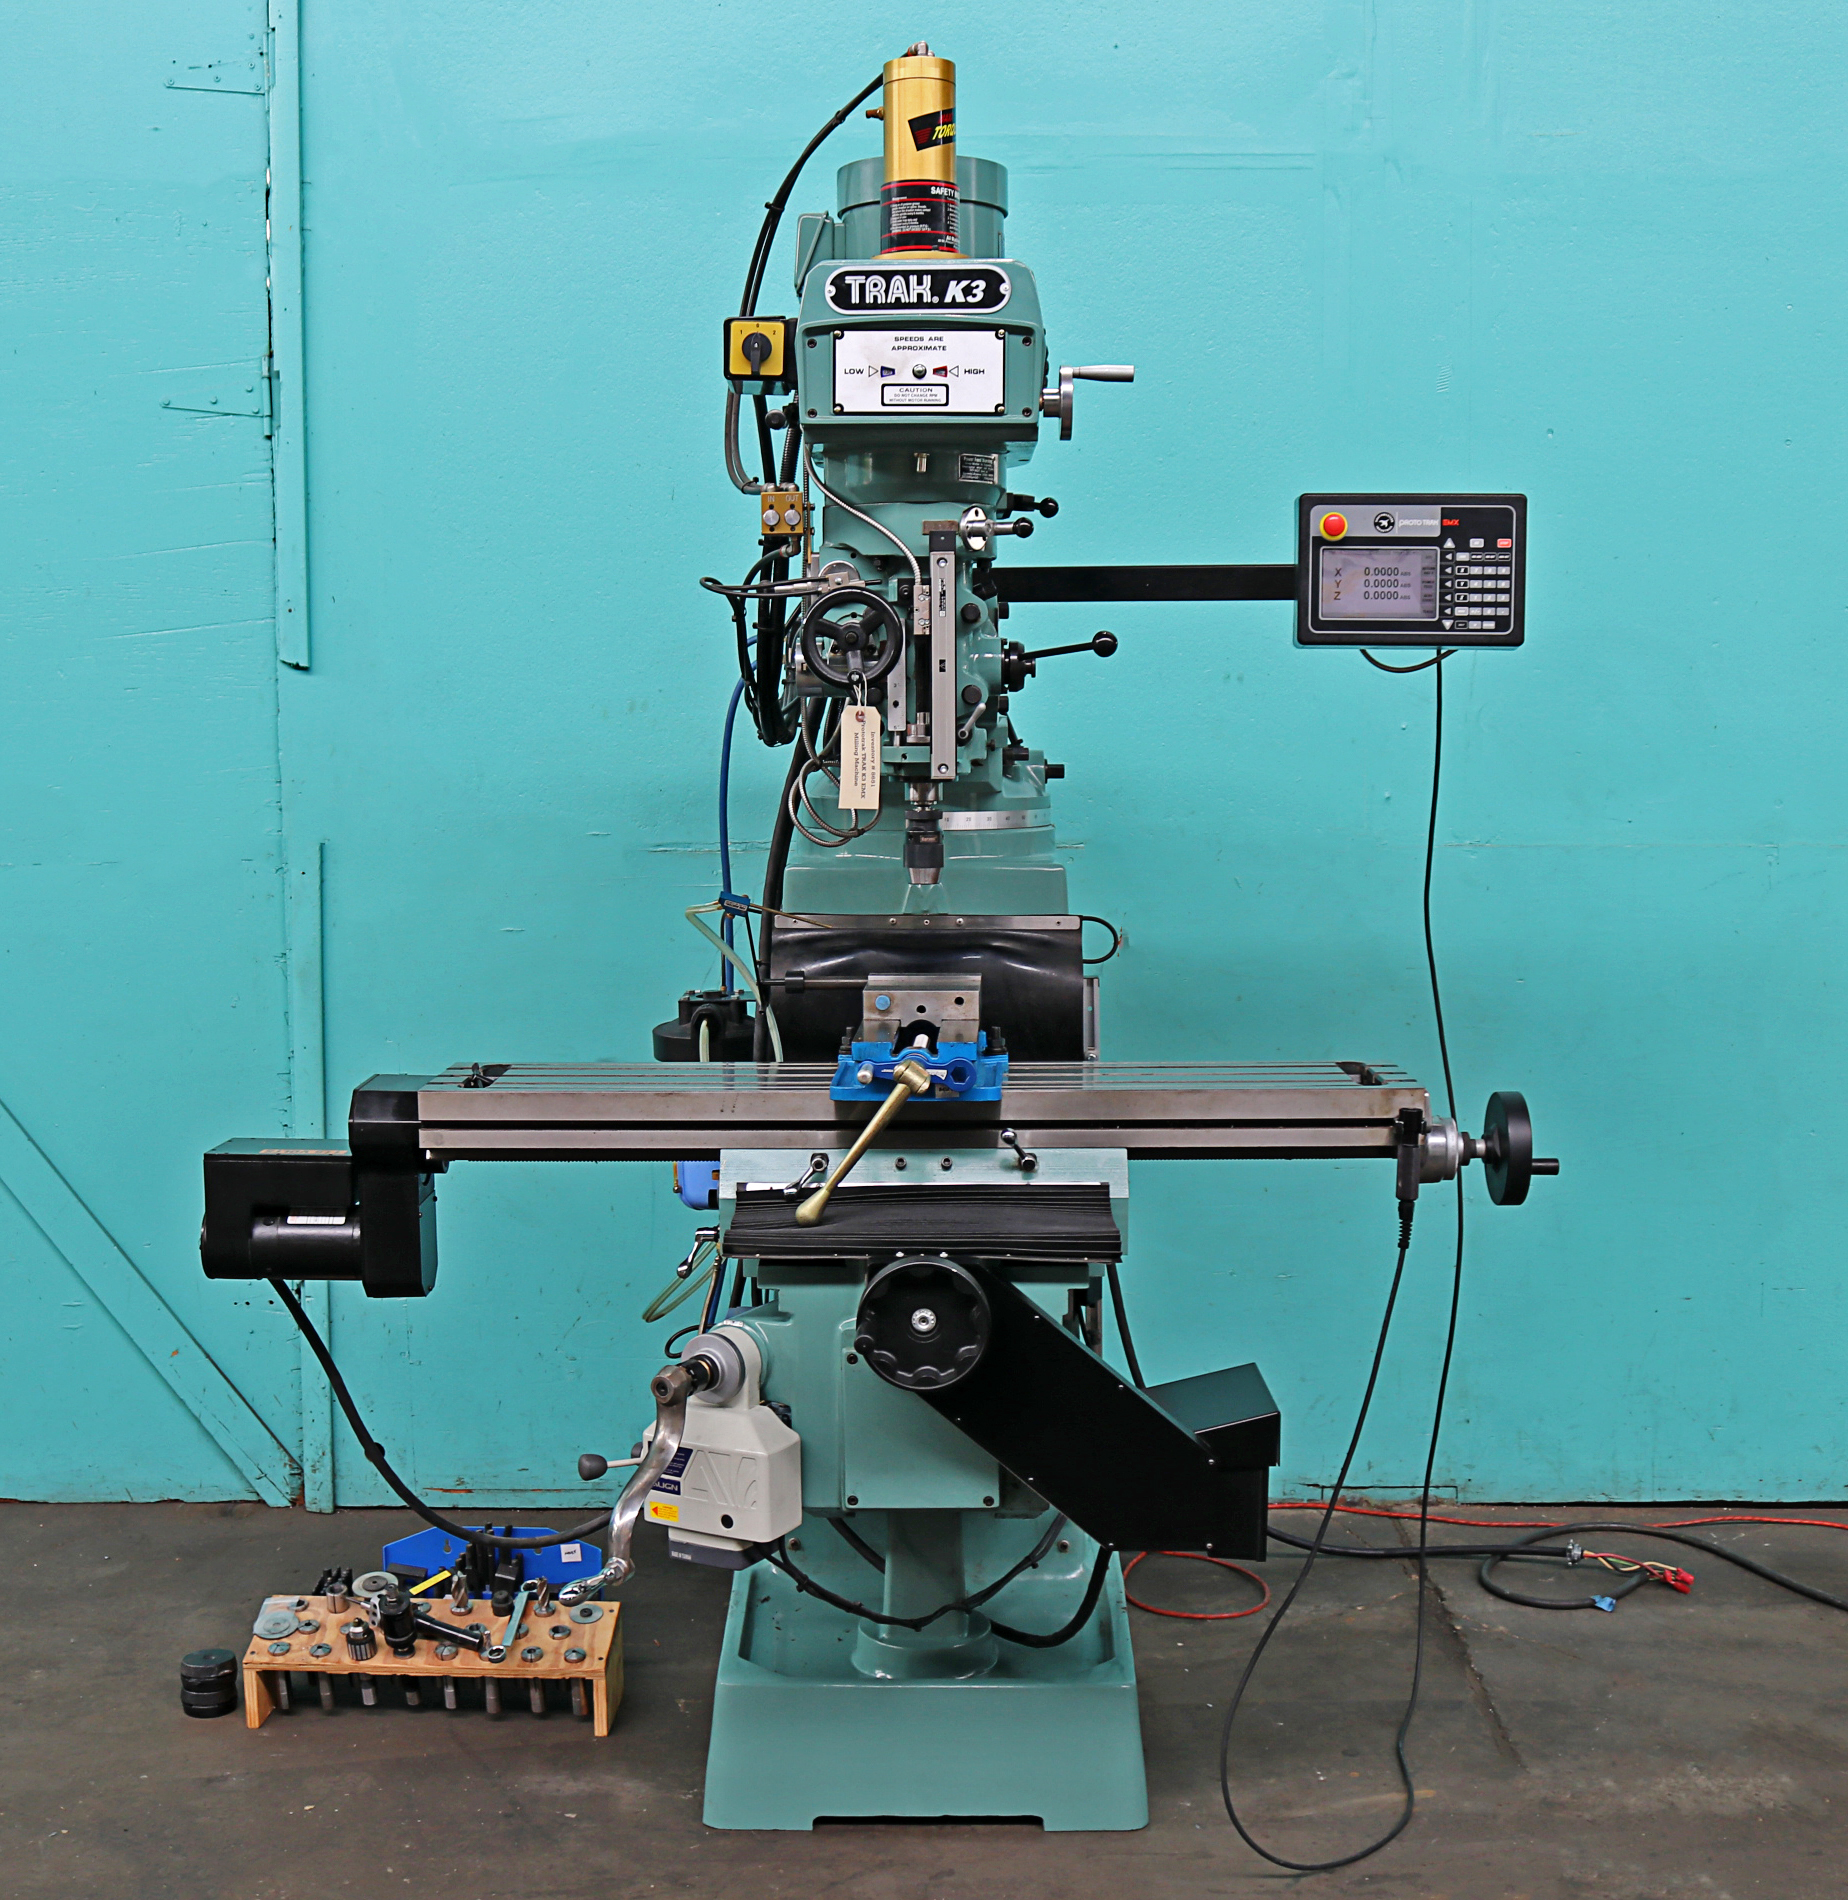 Milling Machine For Sale >> Prototrak 50 X 10 2 Axis Vertical Milling Machine K3 Emx Sale